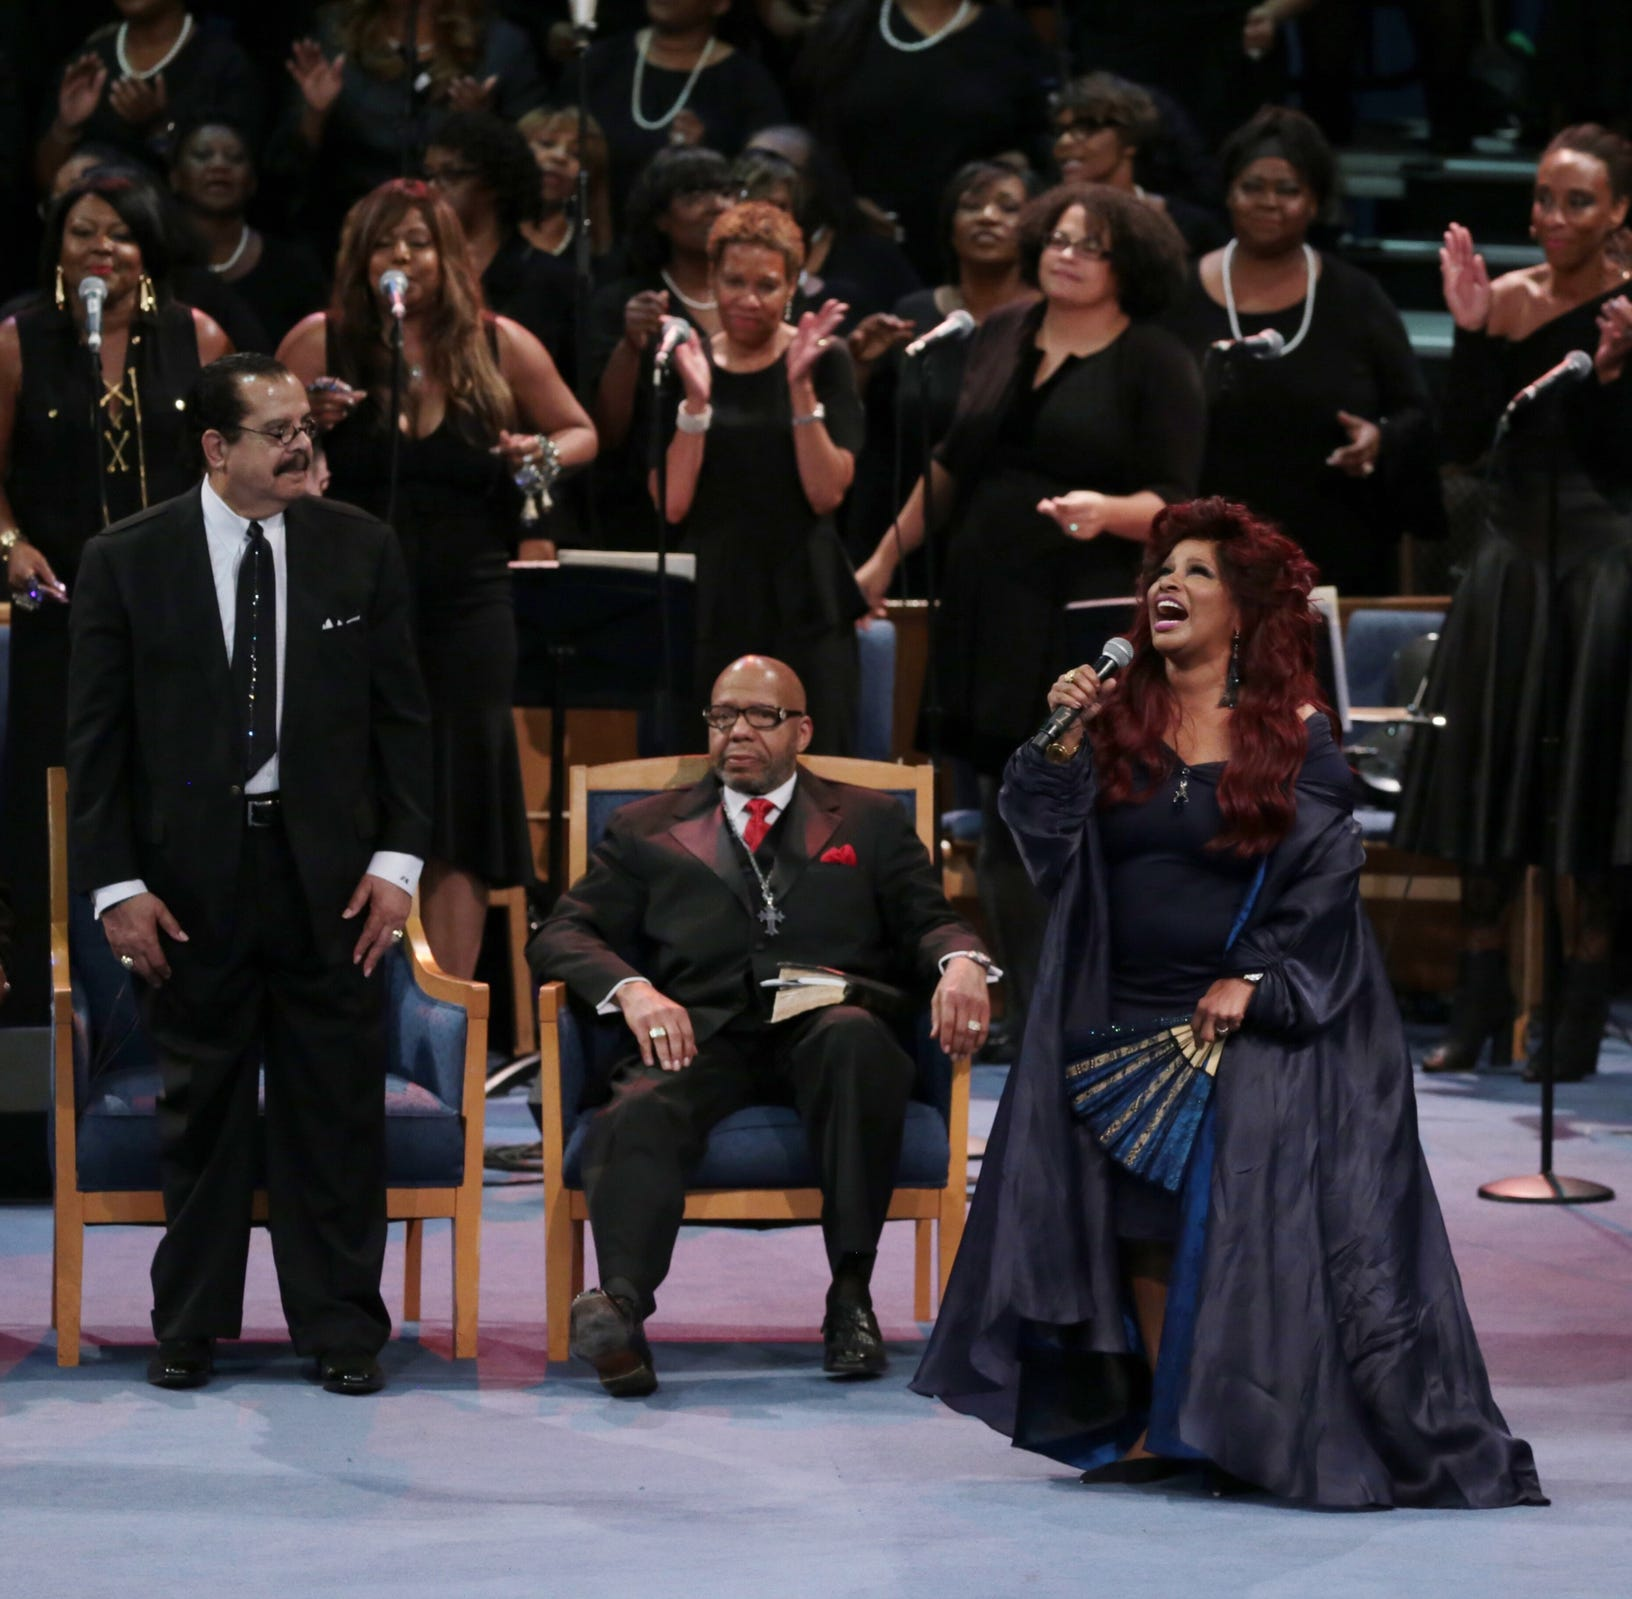 Aretha Franklin funeral: What got people talking